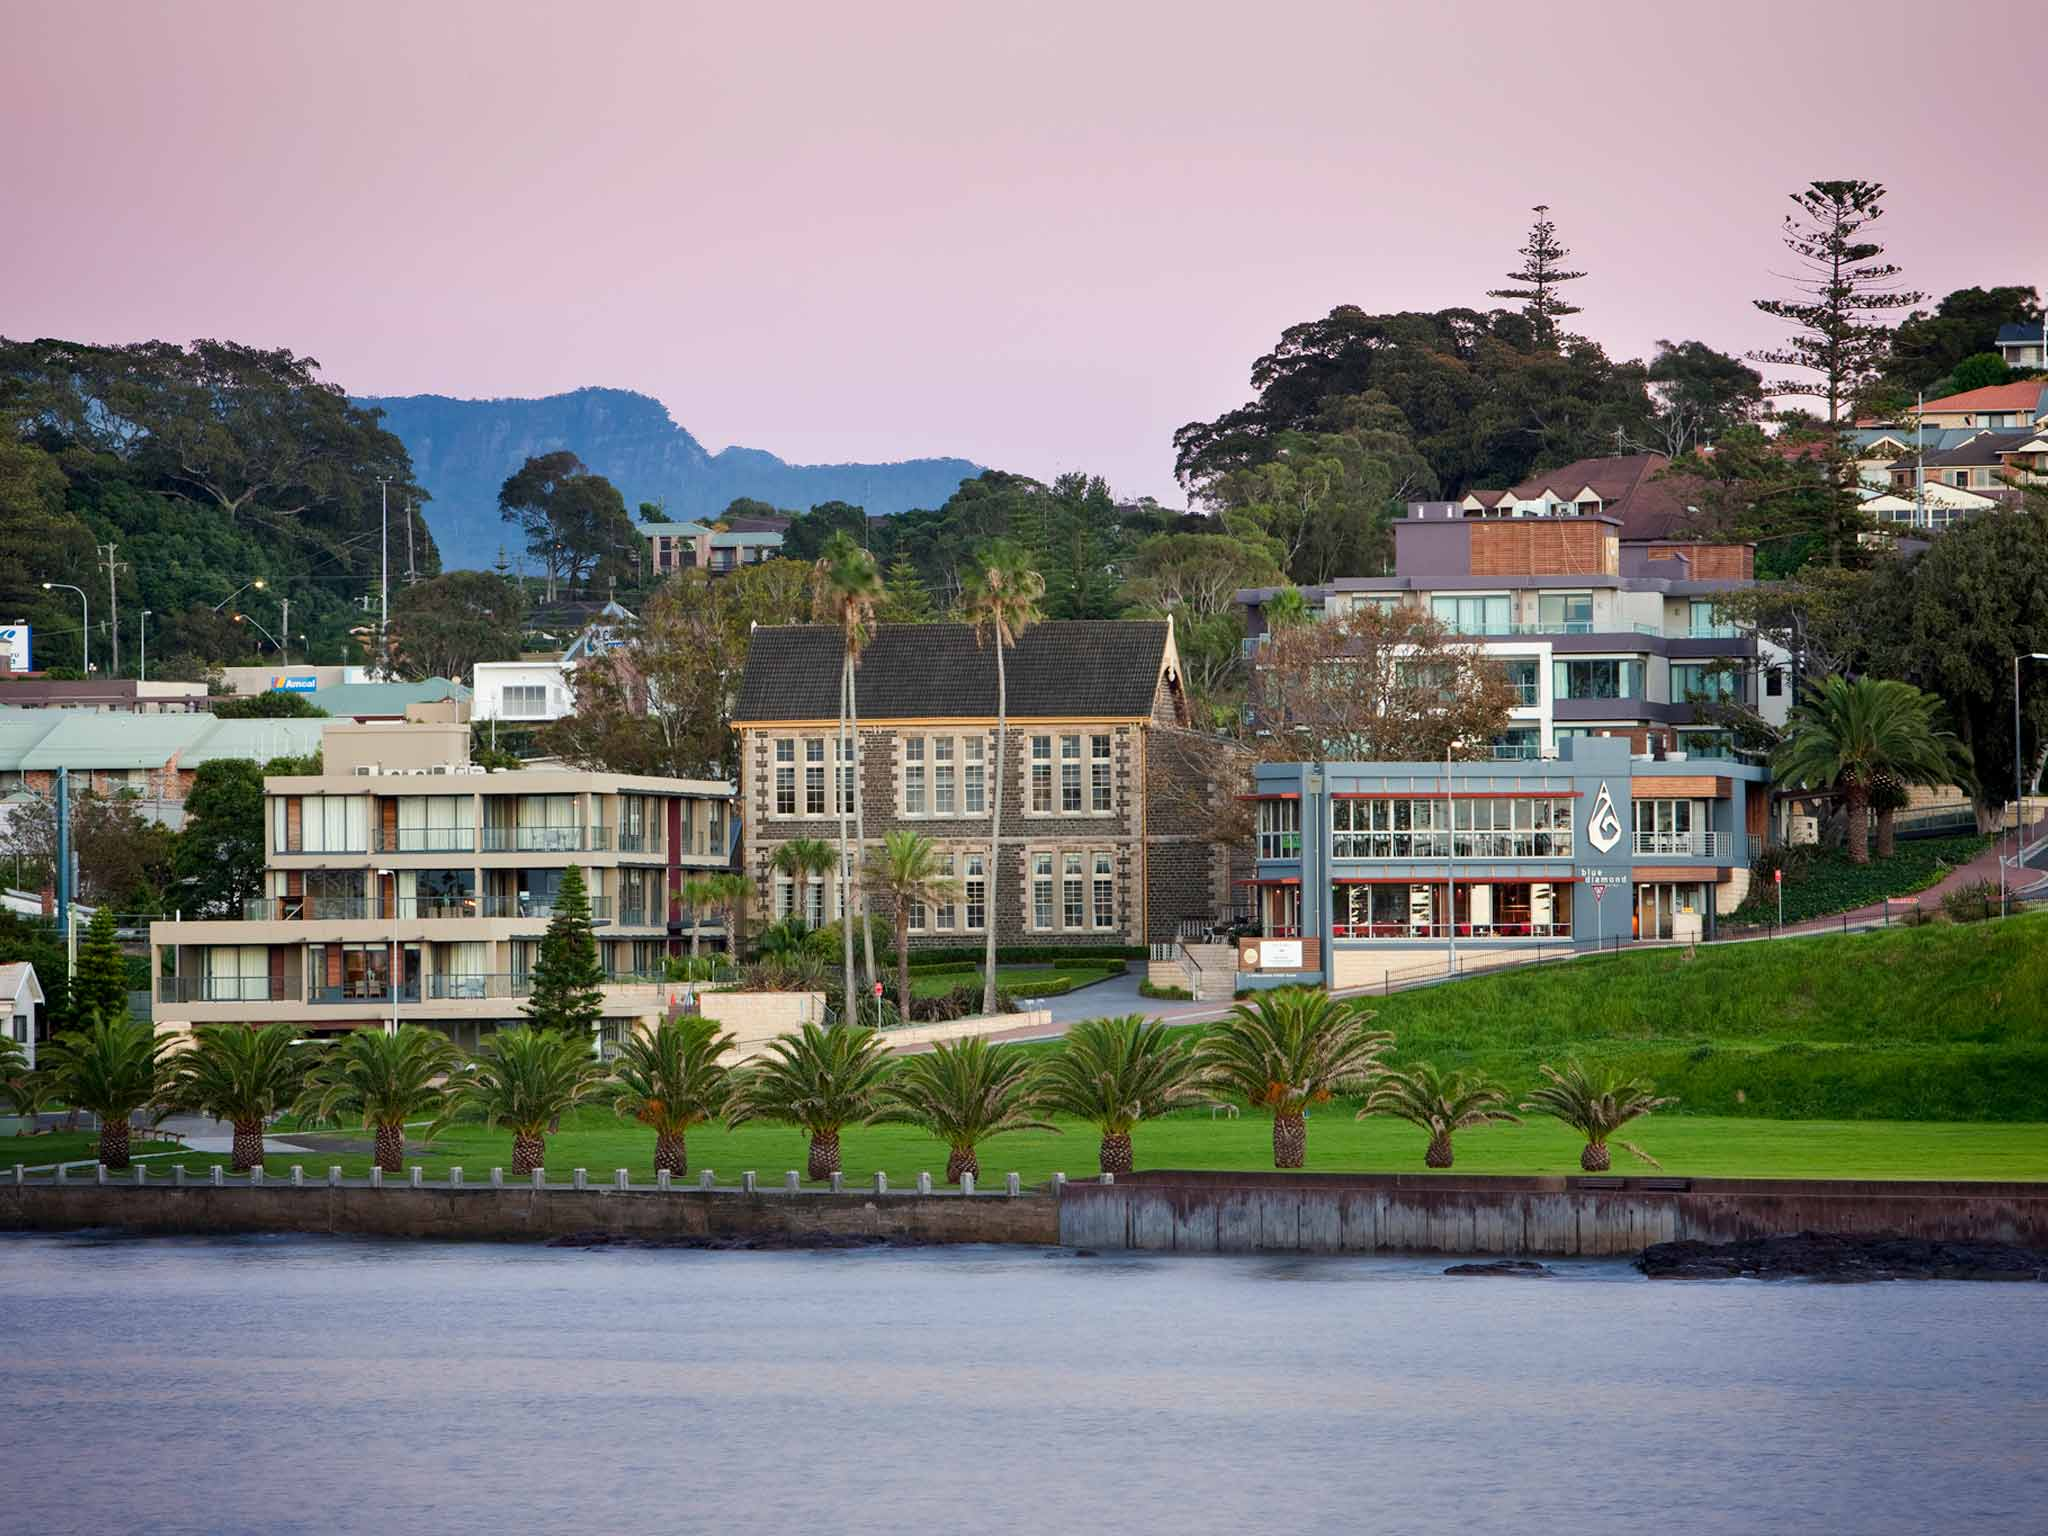 Hotel – The Sebel Kiama Harbourside